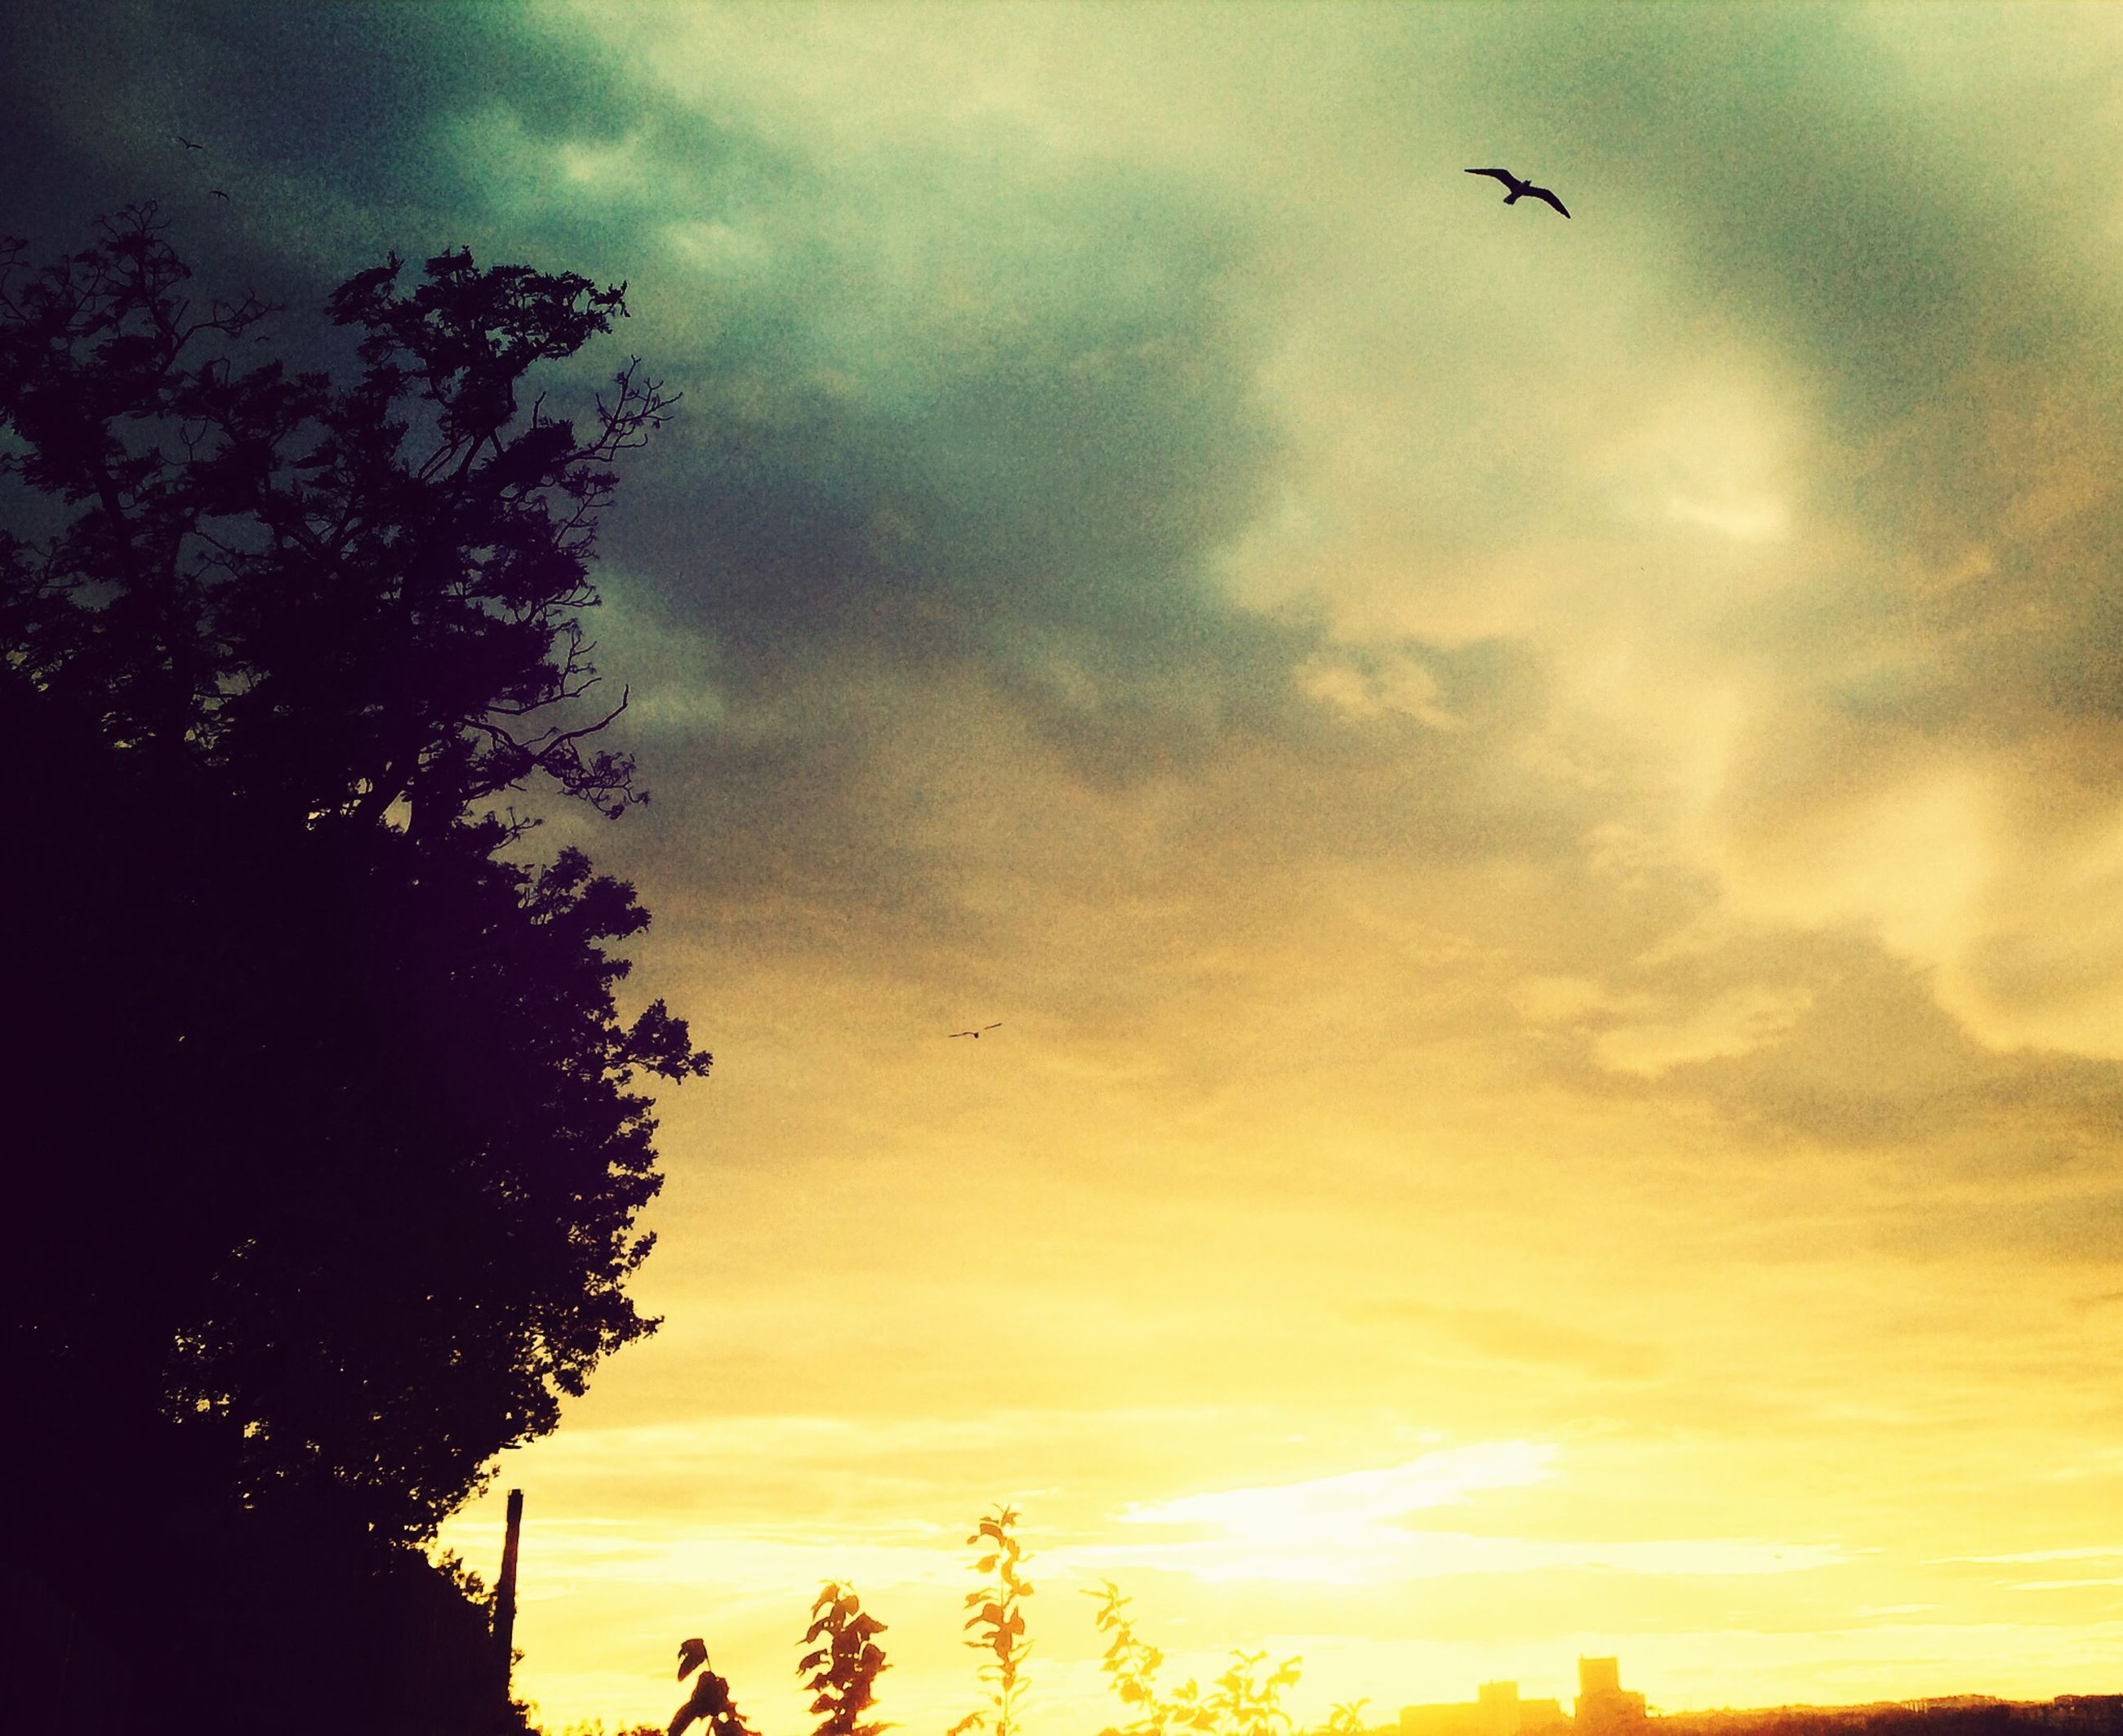 sky, low angle view, silhouette, cloud - sky, sunset, bird, flying, cloudy, nature, beauty in nature, animal themes, tree, cloud, scenics, tranquility, animals in the wild, tranquil scene, wildlife, dusk, overcast